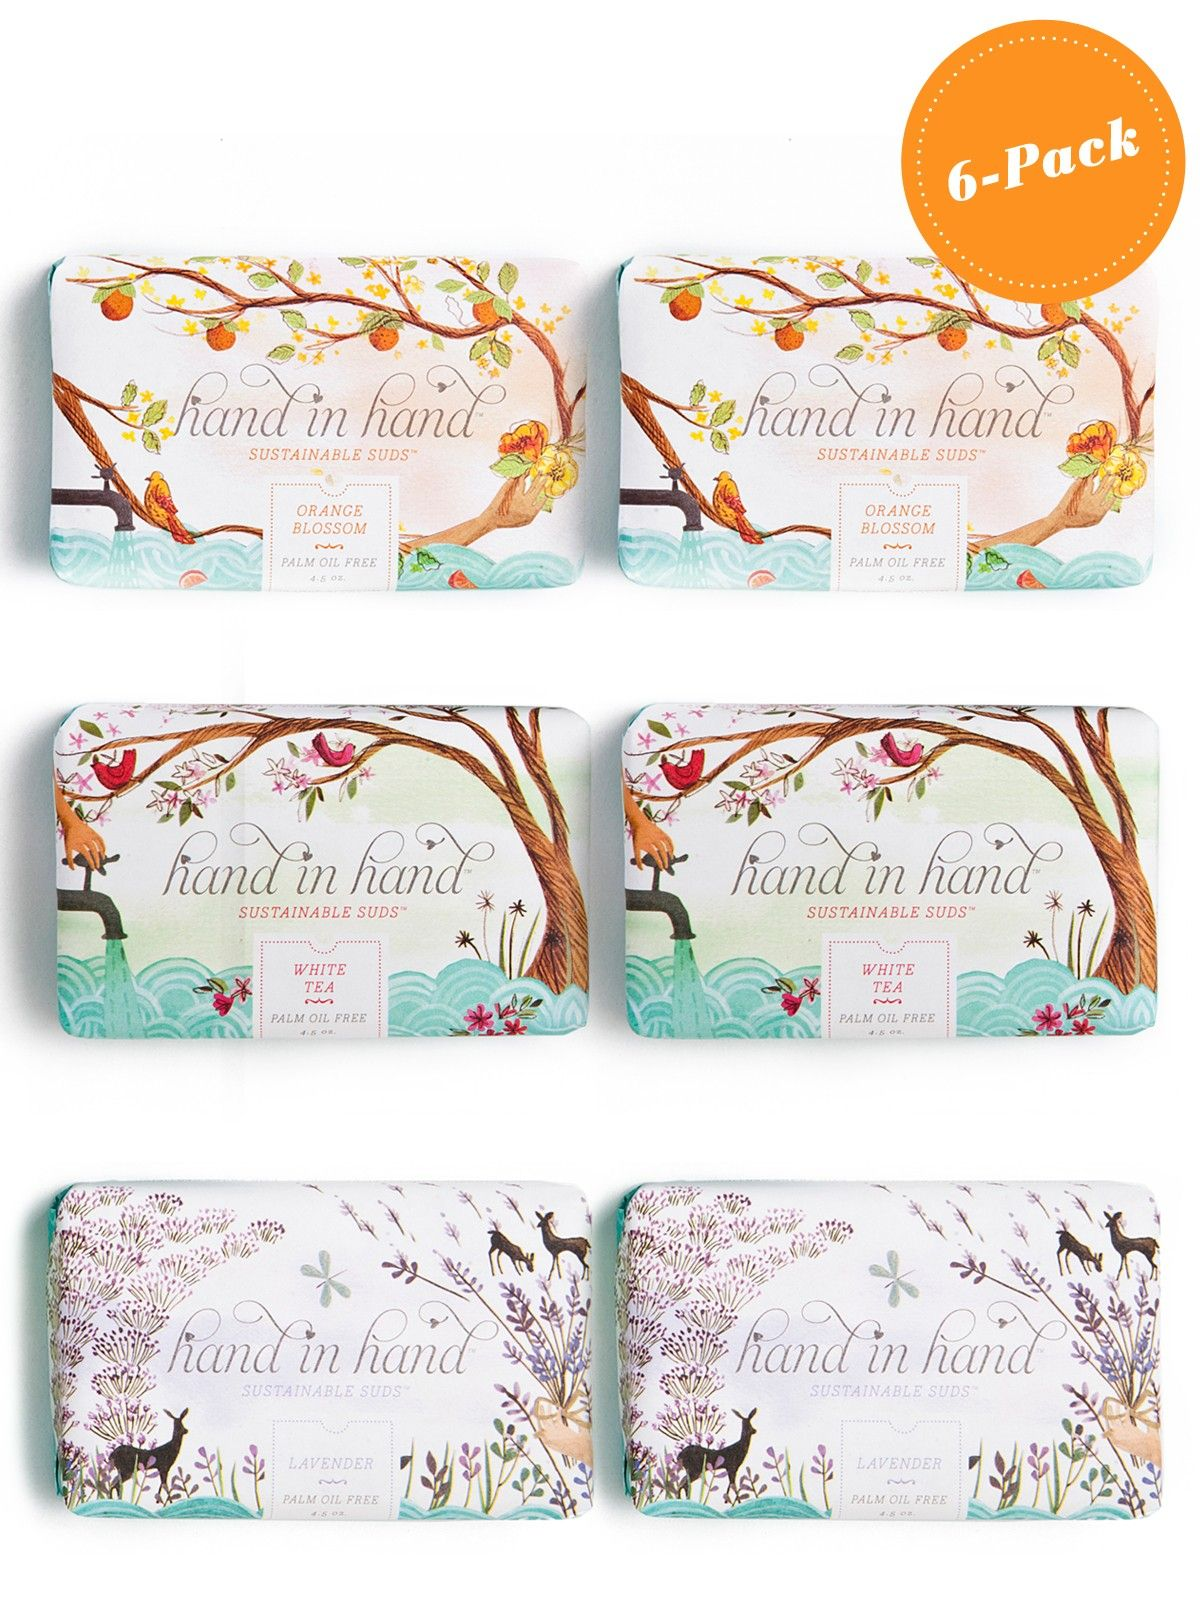 Refinery29 Shops: Hand In Hand - 6-Soap Set